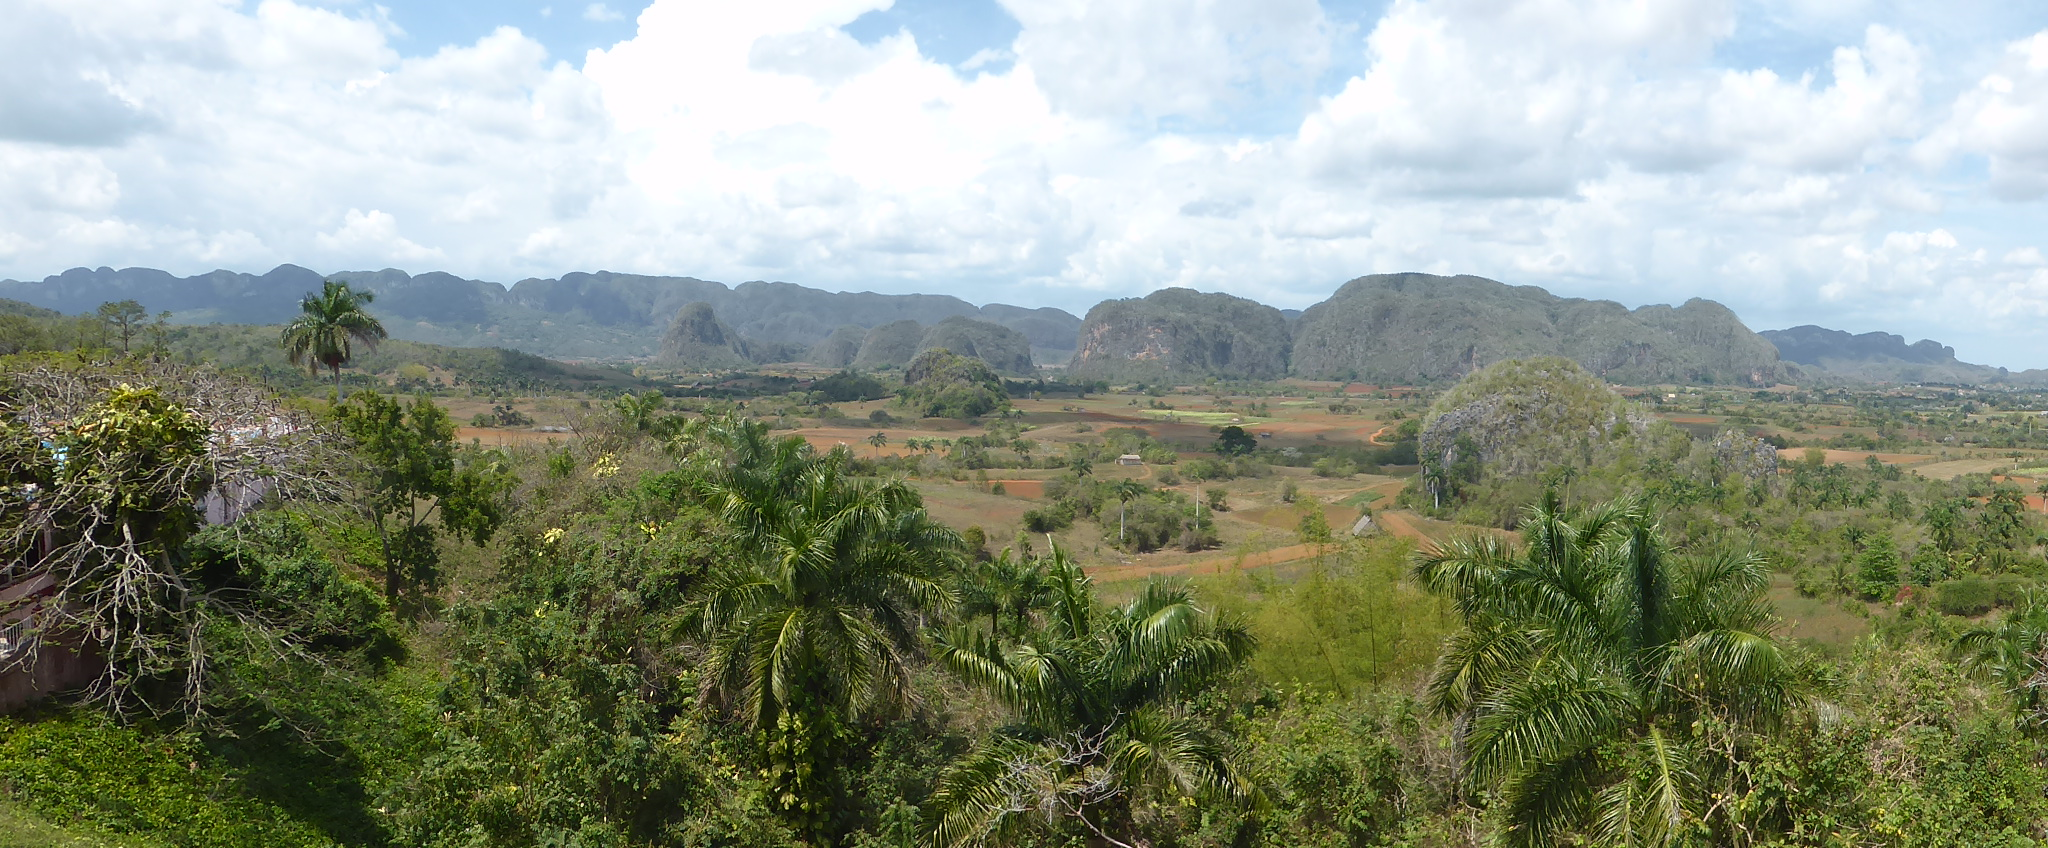 Tobacco Farm and Town Carnival in Viñales